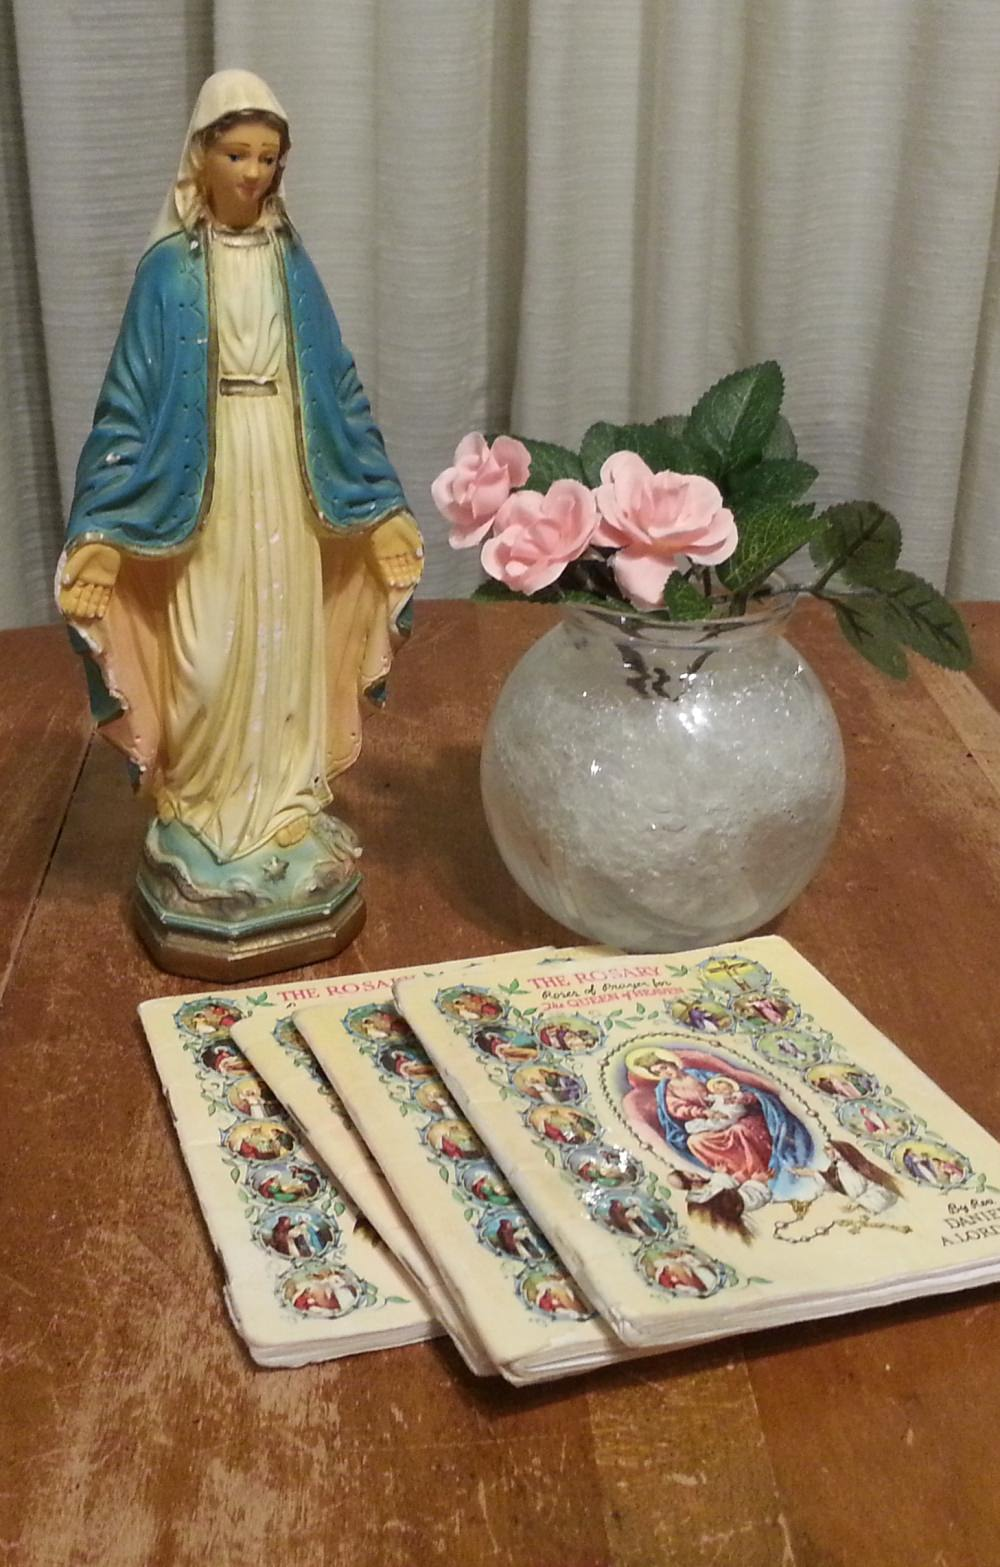 The Promises of the Rosary, statue of Mary with rosary booklets.